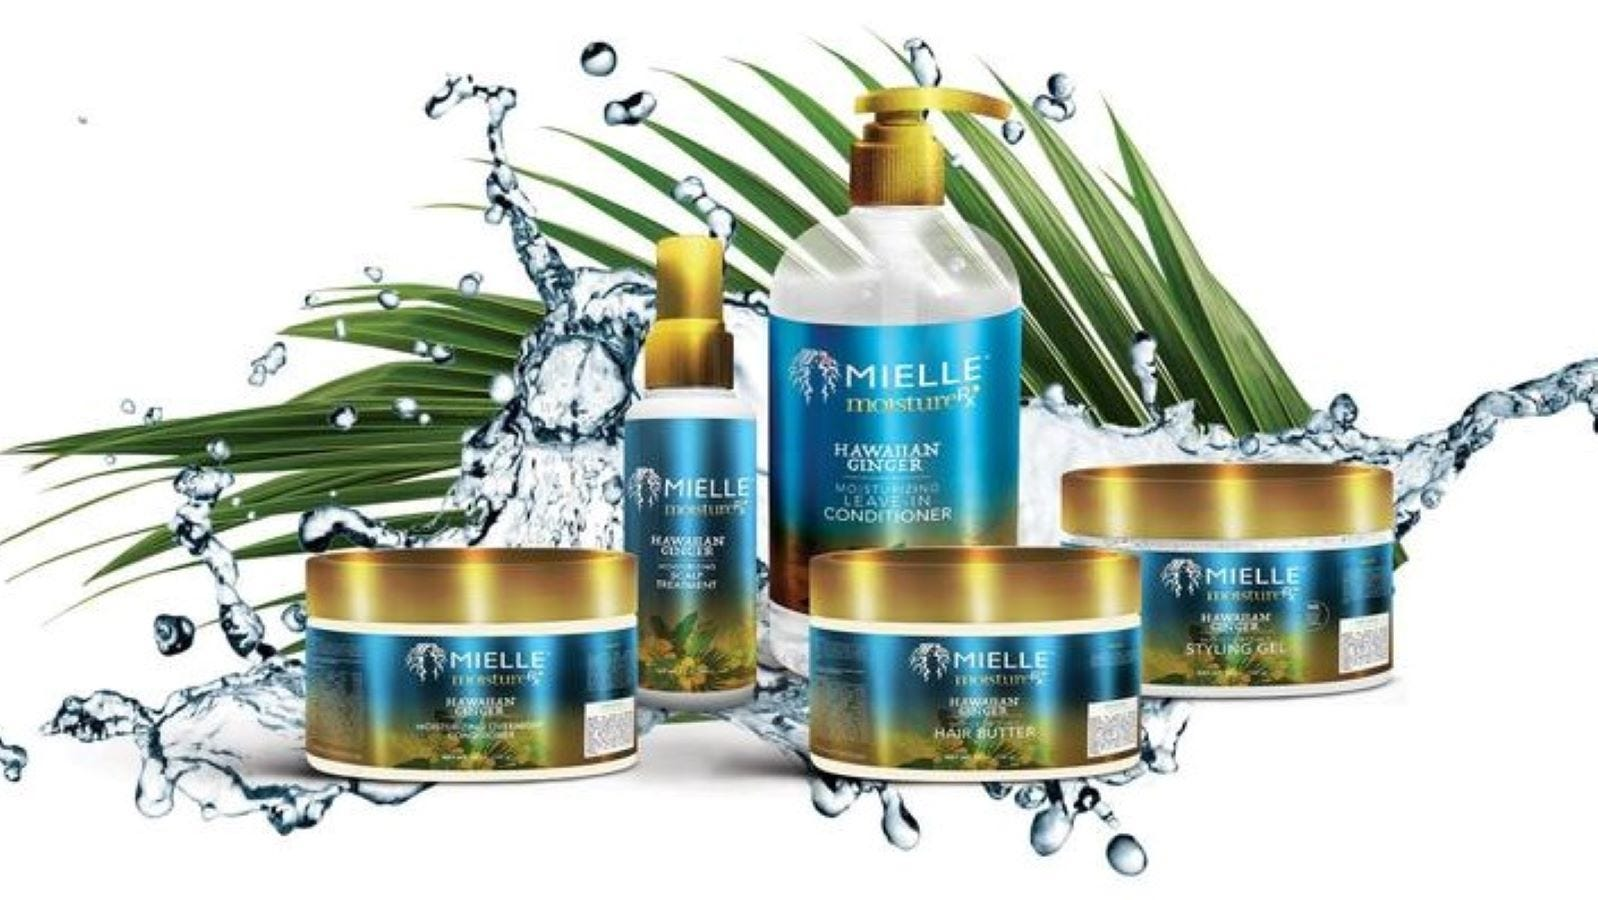 The complete line of Mielle Organics Hair products.